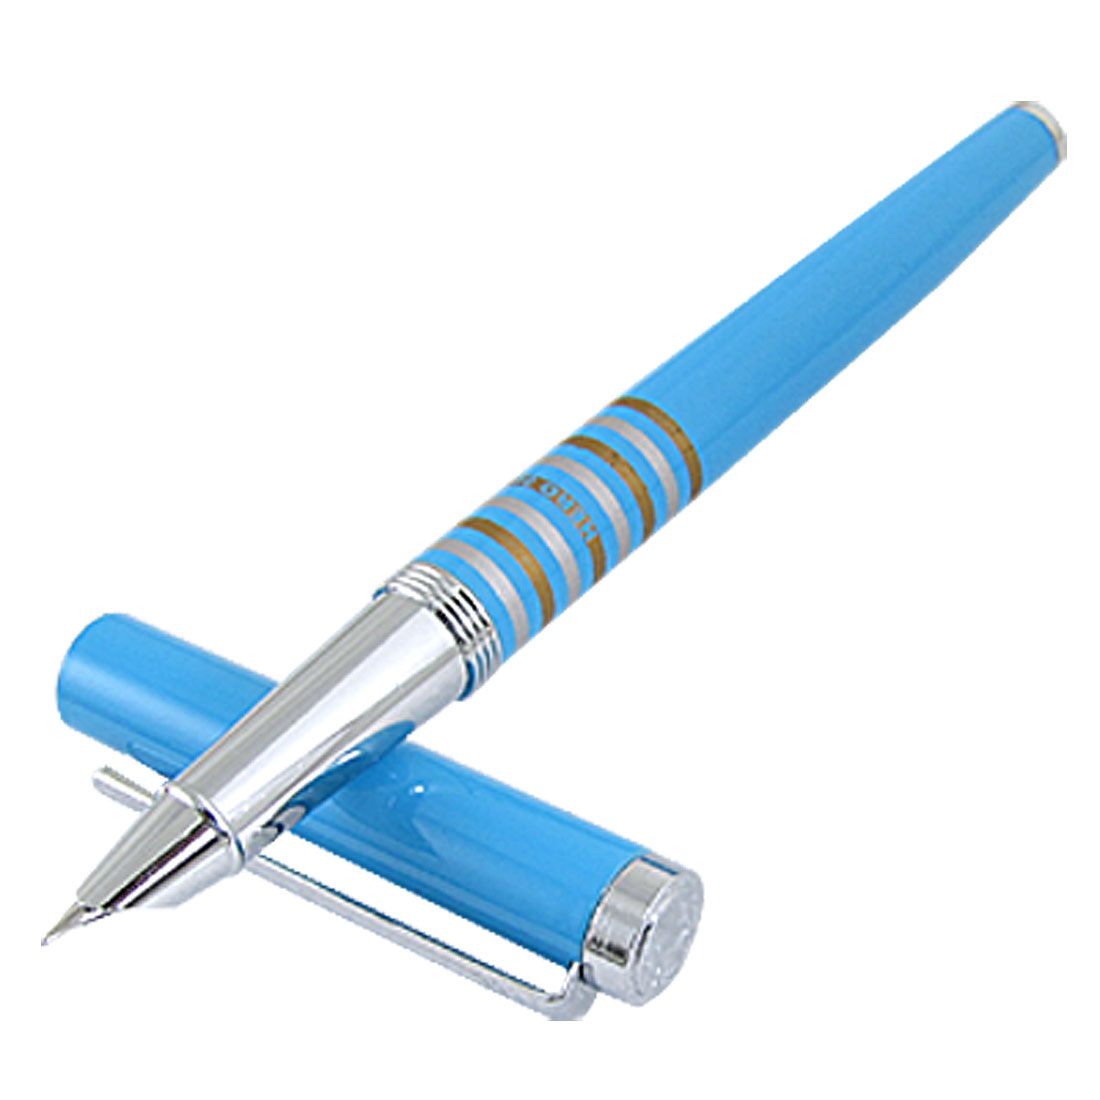 0.4mm Iridium Tipped Nib Metal Fountain Pen Blue w Clip